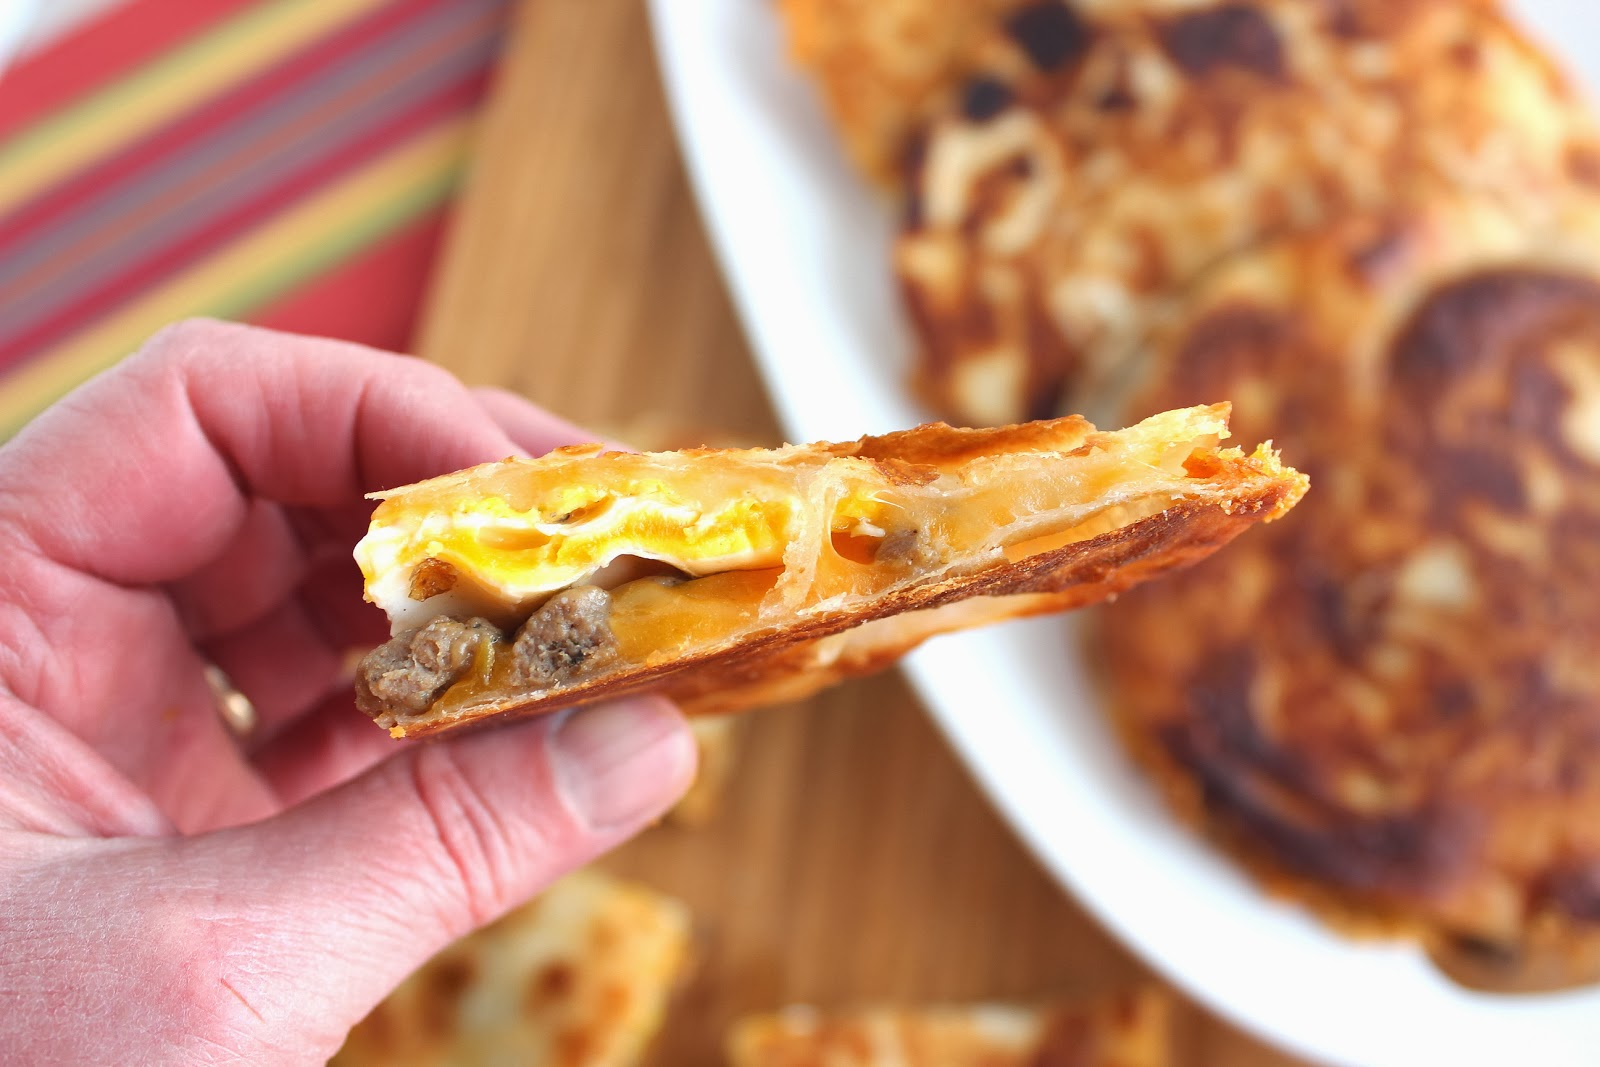 Kudos Kitchen By Renee: Fast and Easy Sausage and Egg Quesadillas